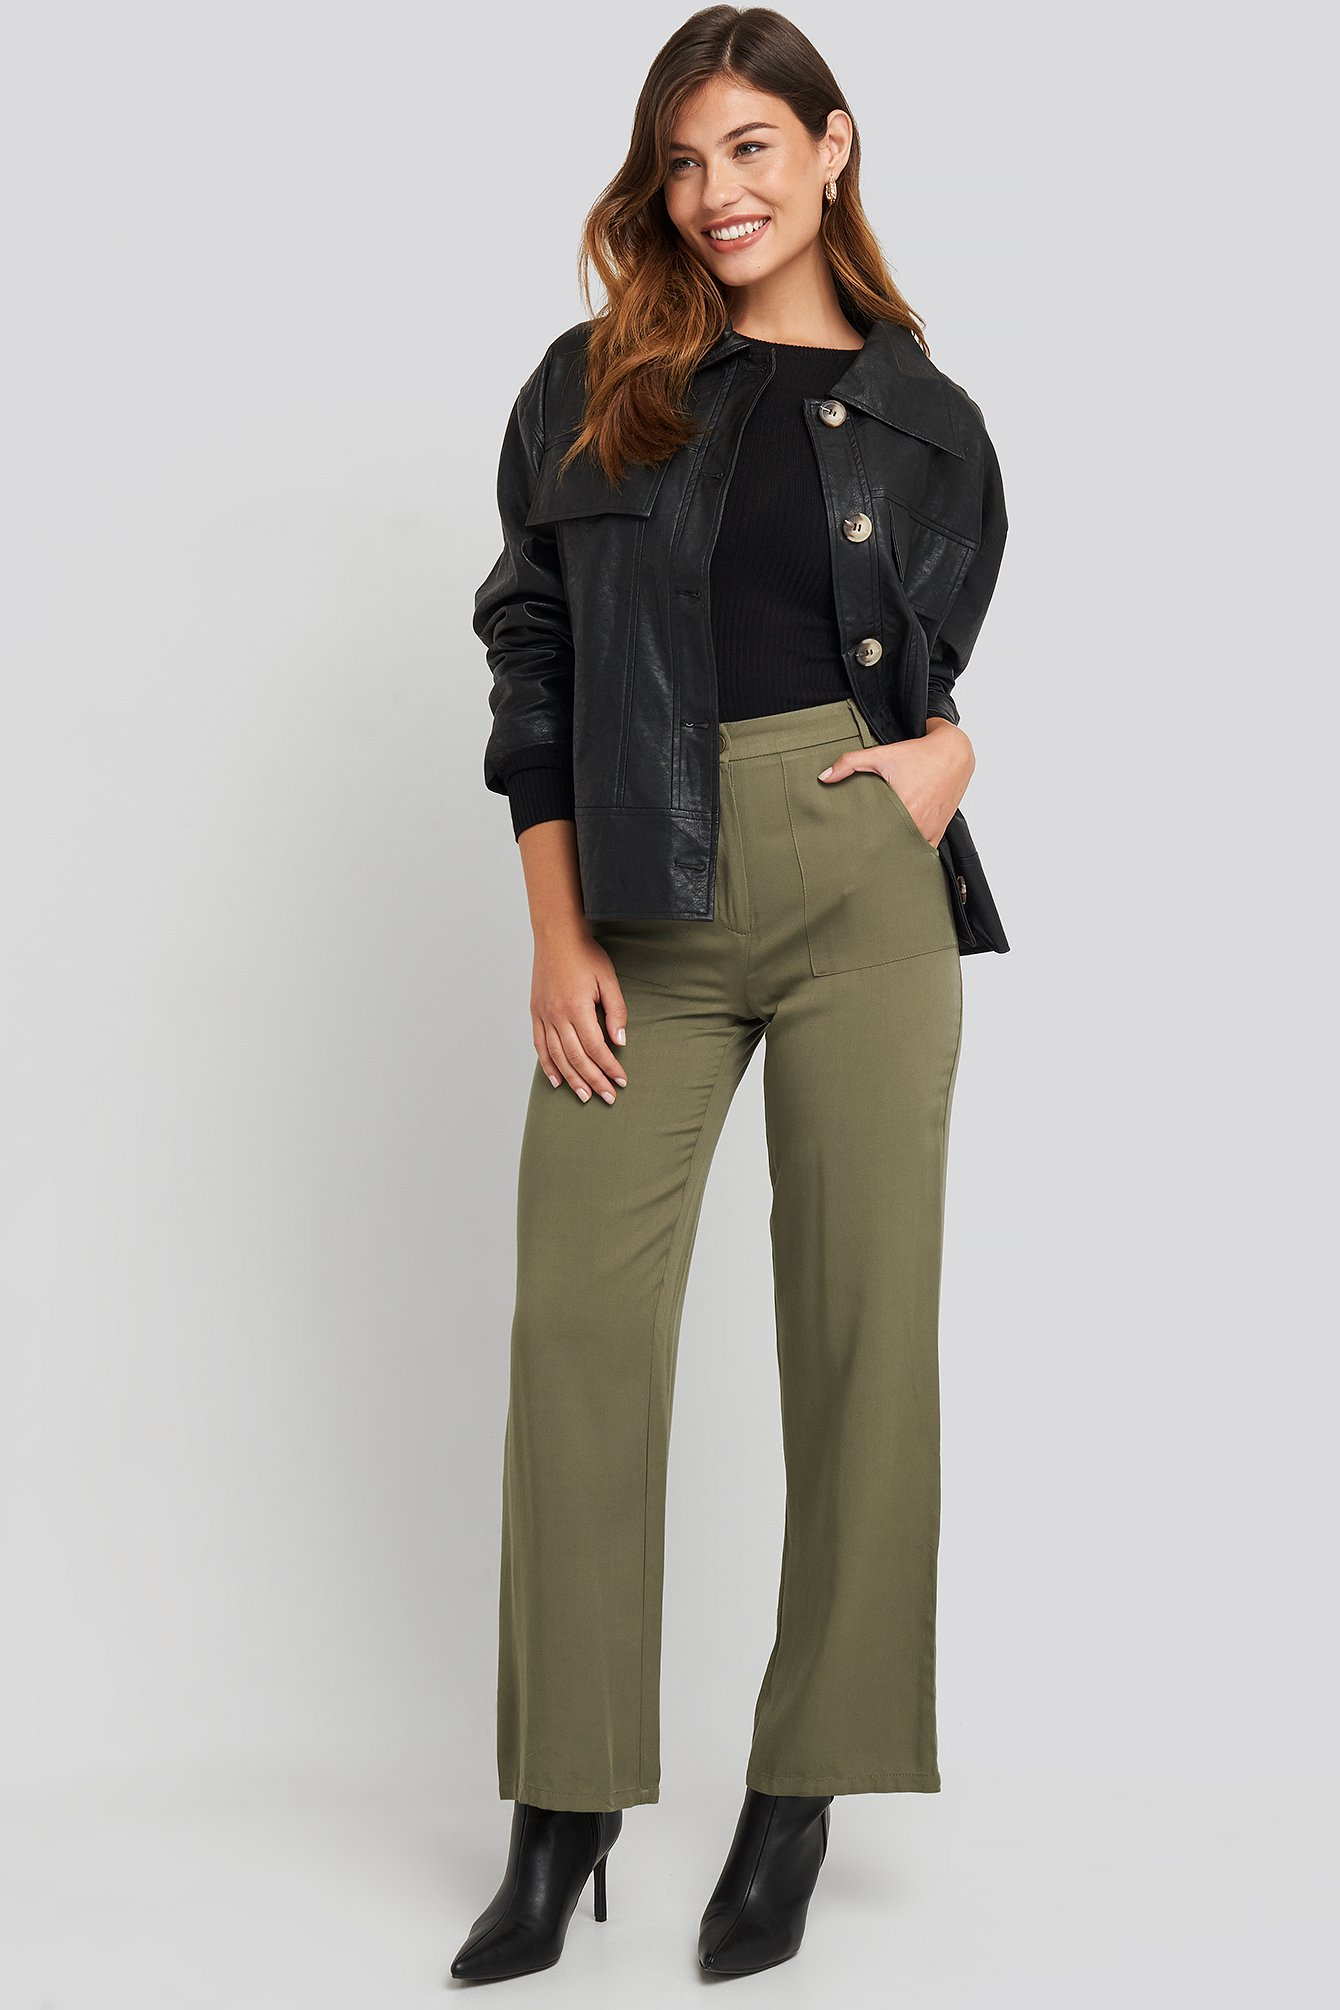 Big Pocket Flowy Pants Grøn by Na Kd